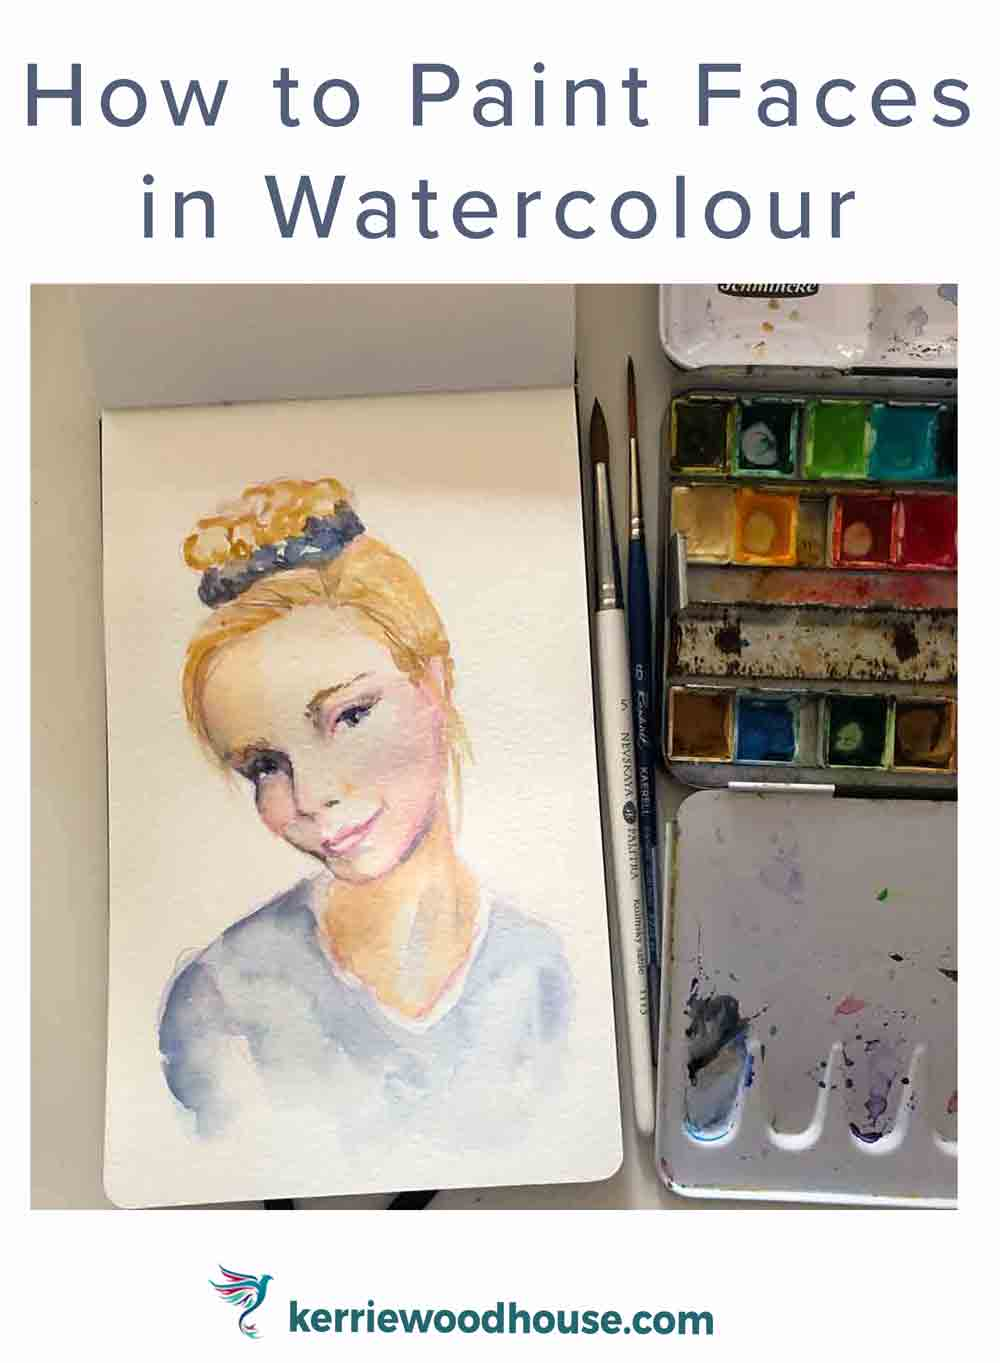 how-to-paint-faces-in-watercolour-kw.jpg